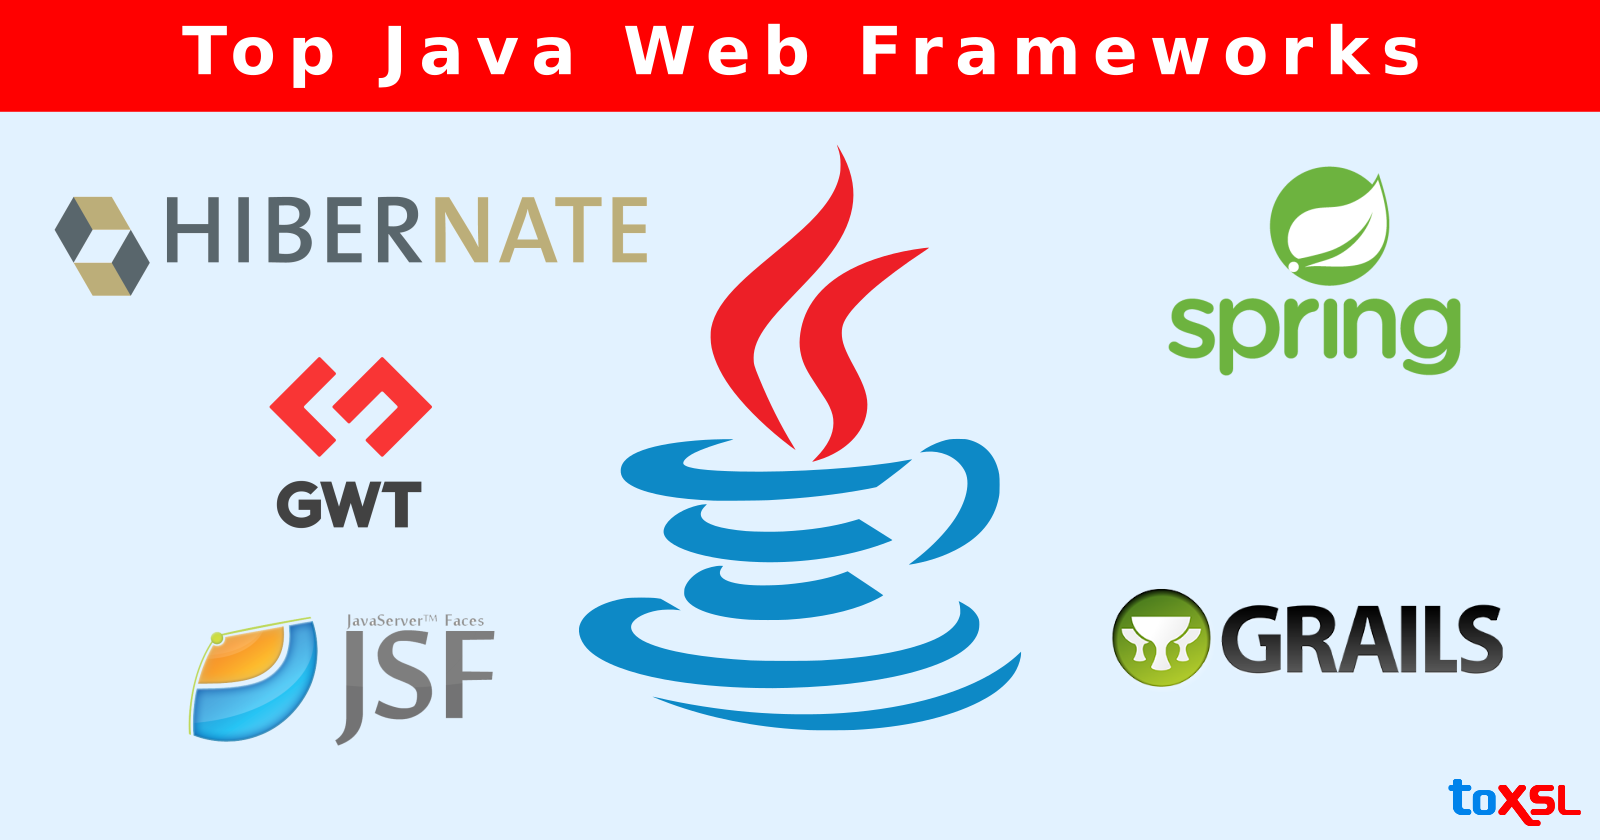 Top Java Web Frameworks for 2018